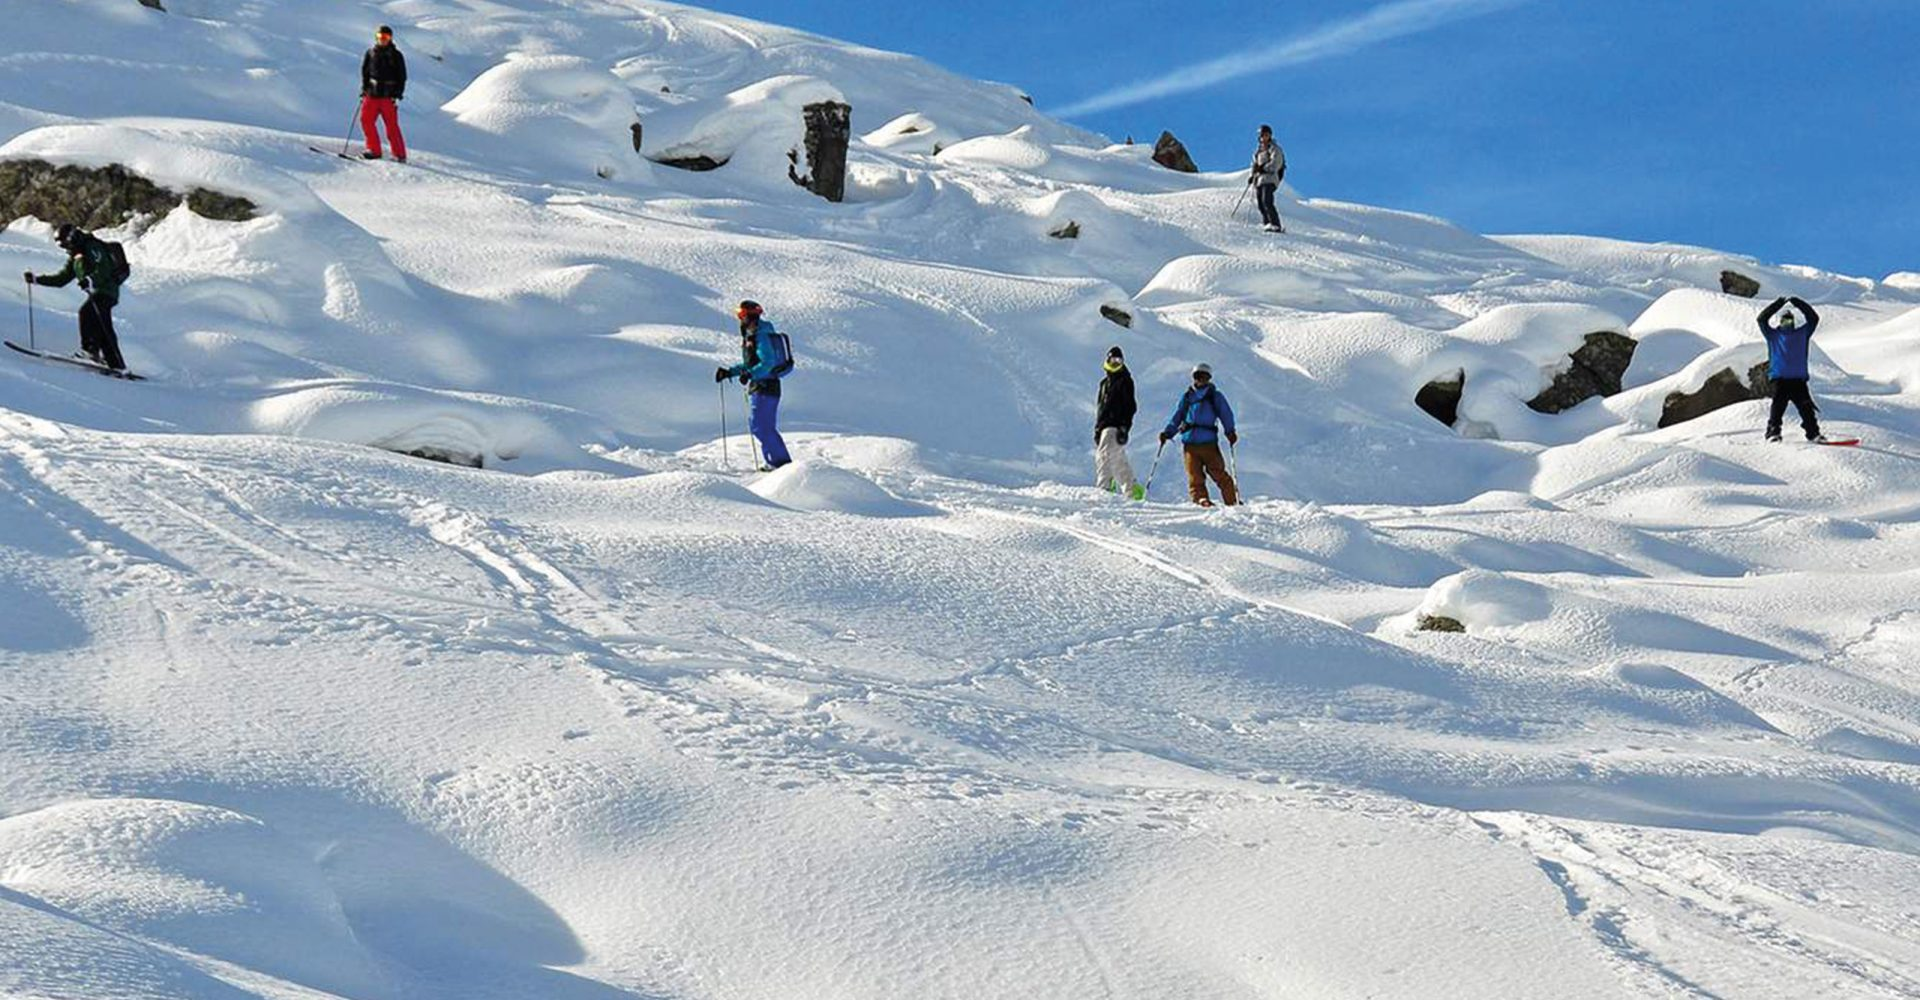 We'll take you to the world's biggest ski resorts where you can hit the slopes on and off-piste. Surrounded by the untouched natural landscape of the Alps.